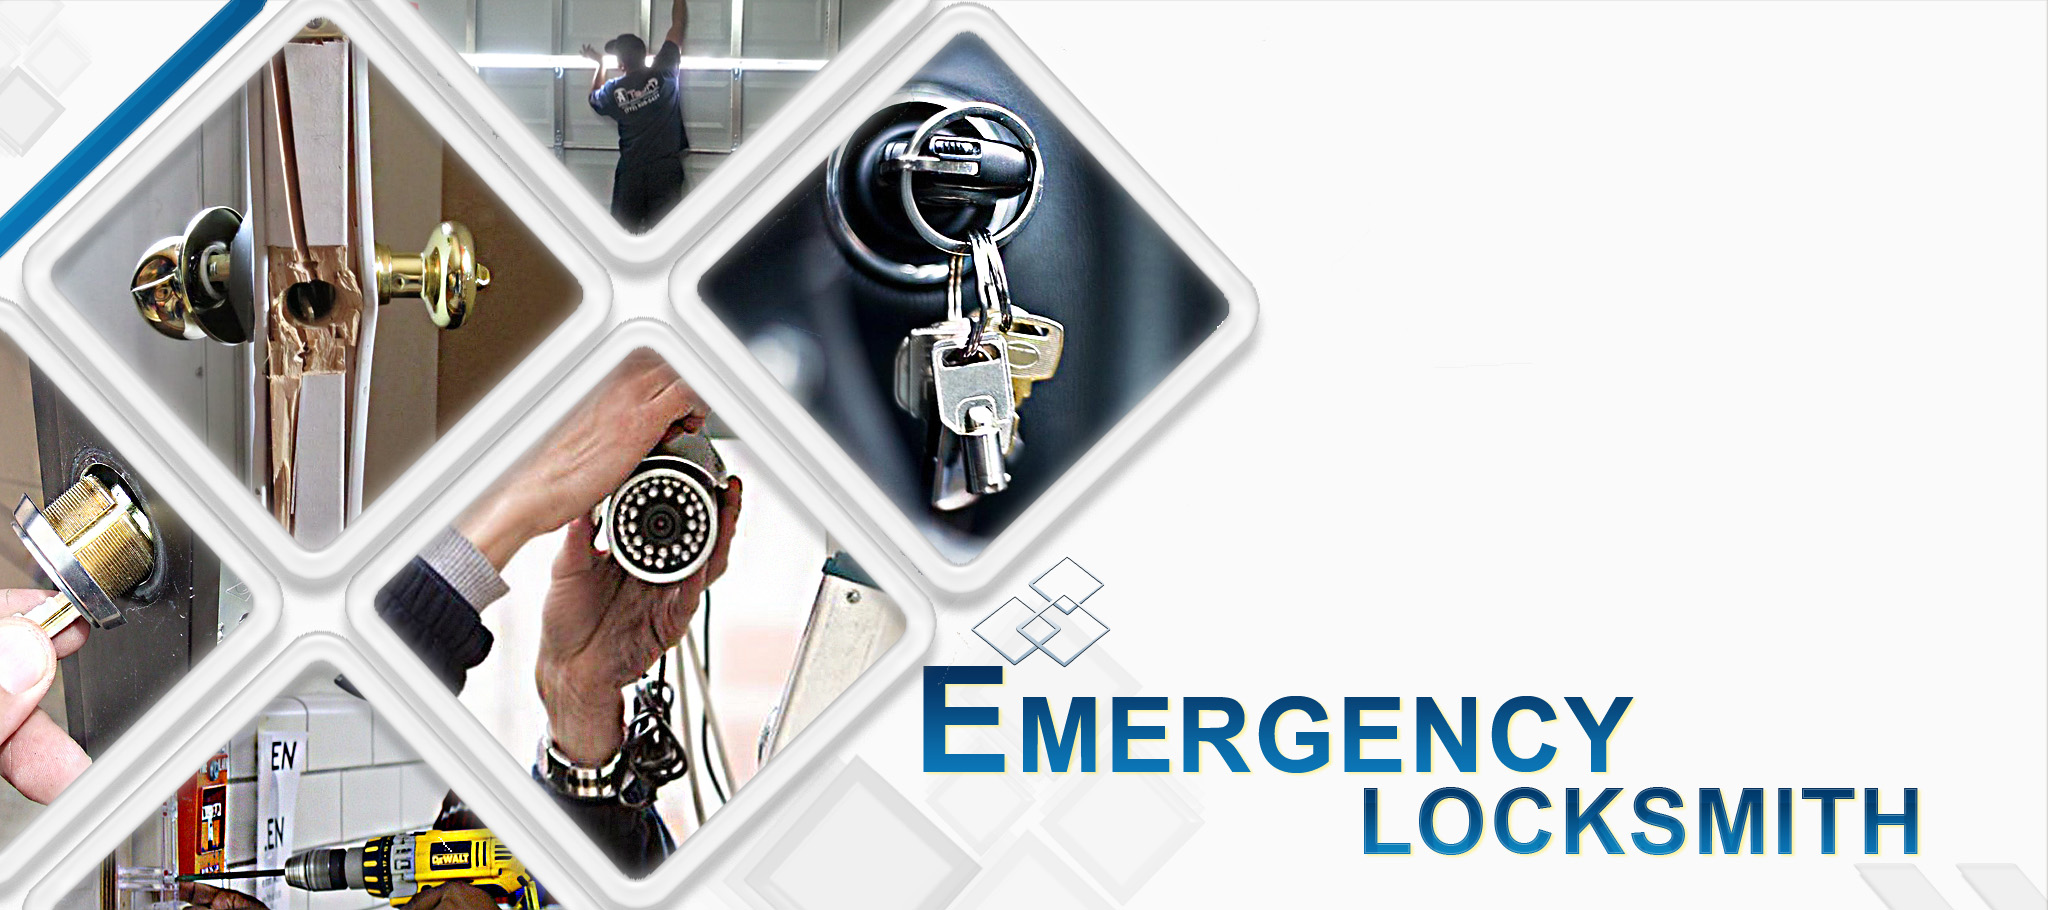 Emergency Locksmith Edmonton | Commercial & Residential Locksmith